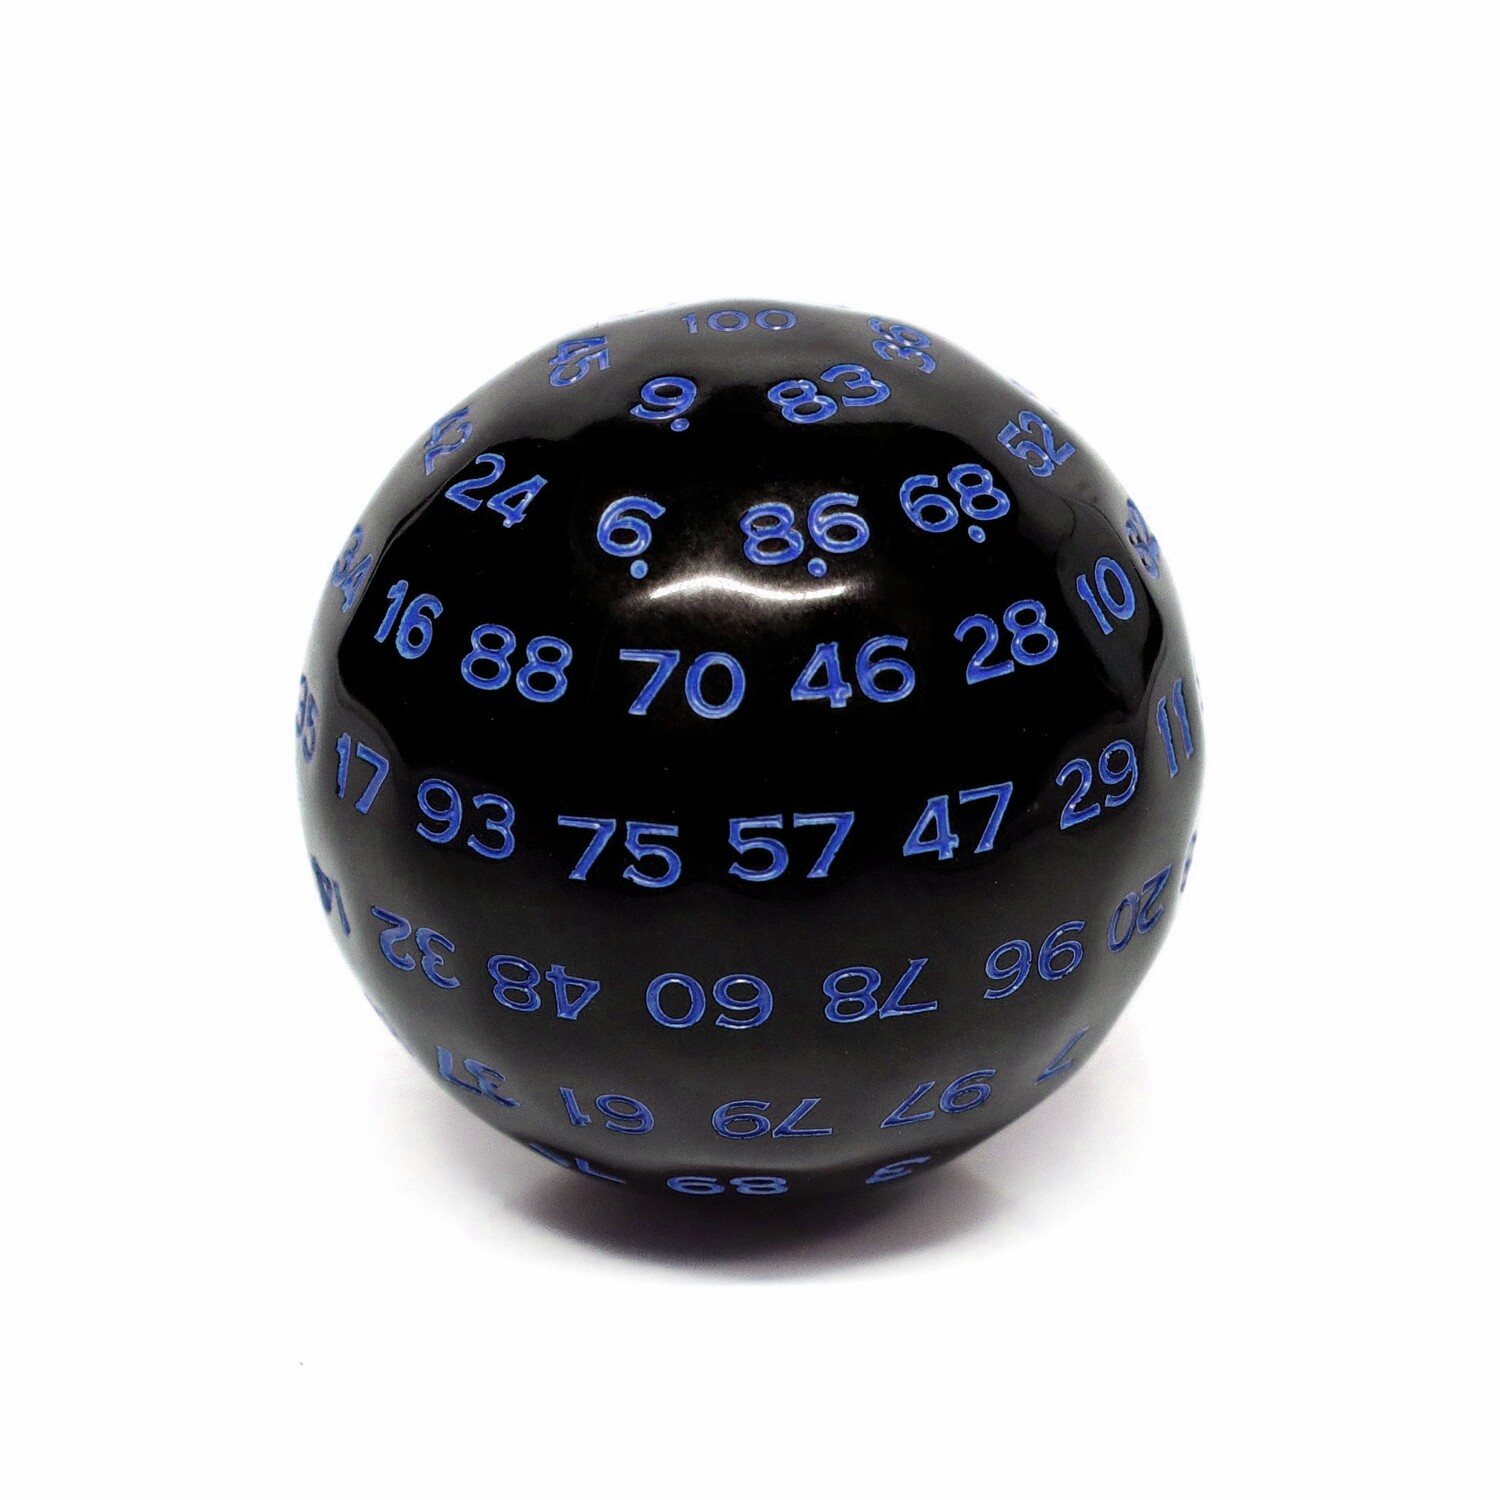 d100 Die: Black/Blue Opaque